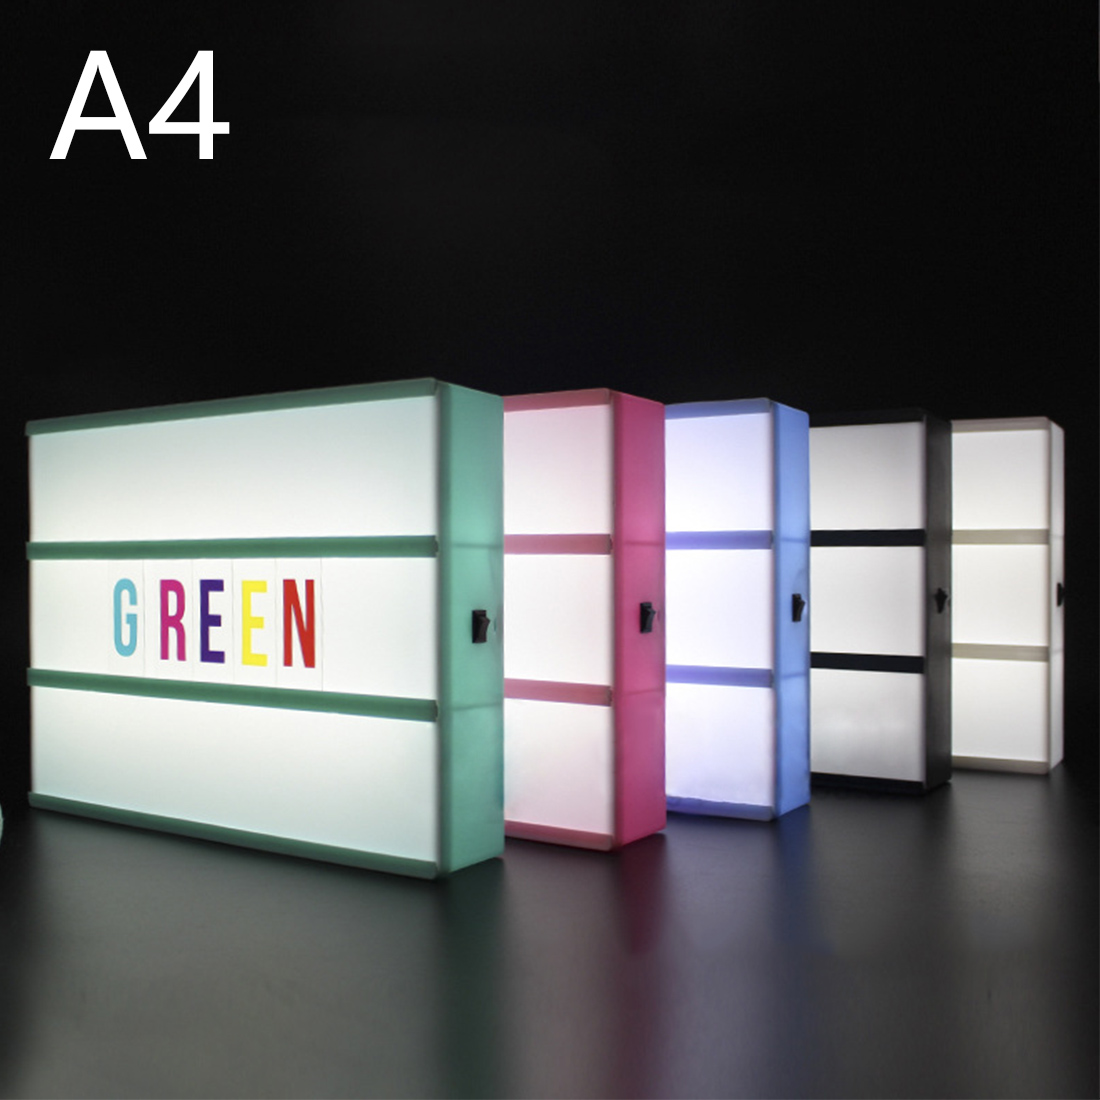 High-quality A4 Size LED Combination Light Box Night Lamp DIY Black Letters Cards USB Port Powered Cinema Lightbox